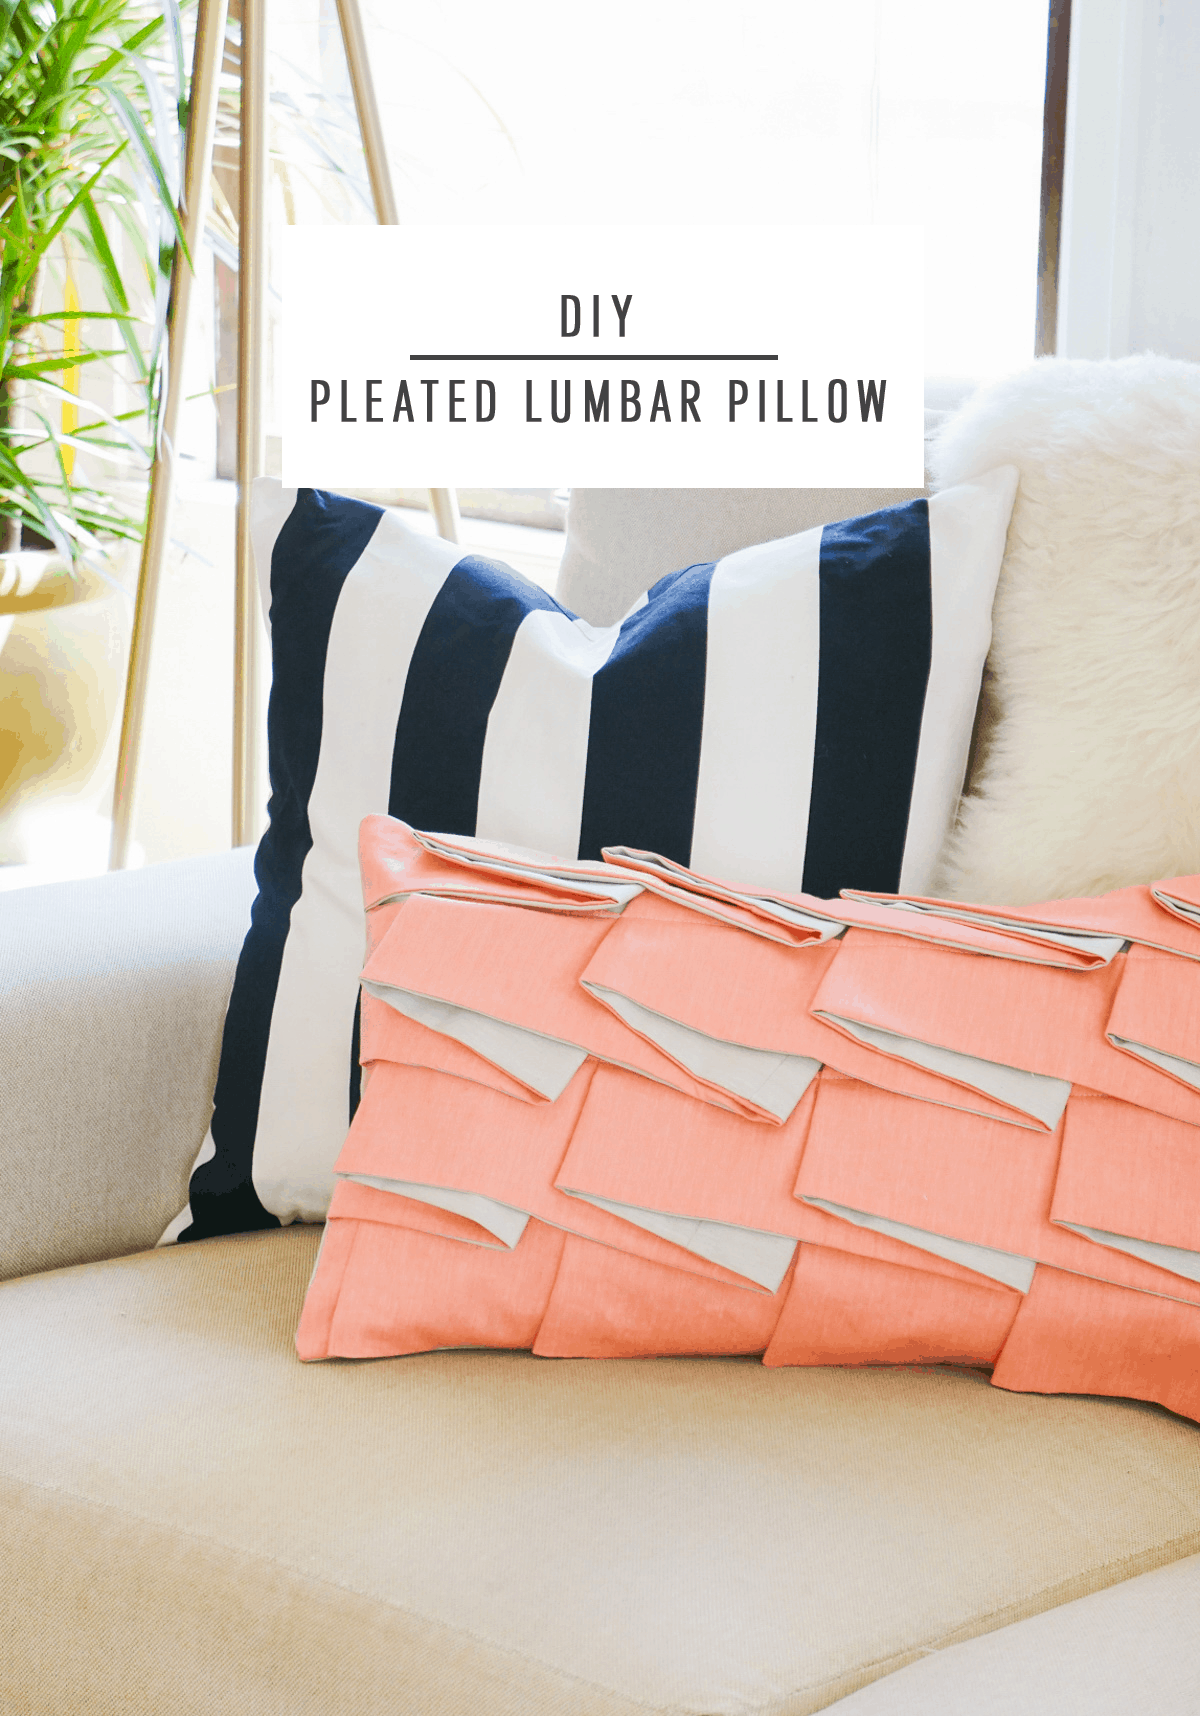 Diy Structured Pleat Lumbar Pillow by Sugar & Cloth, an award winning DIY, home decor, and recipes blog.